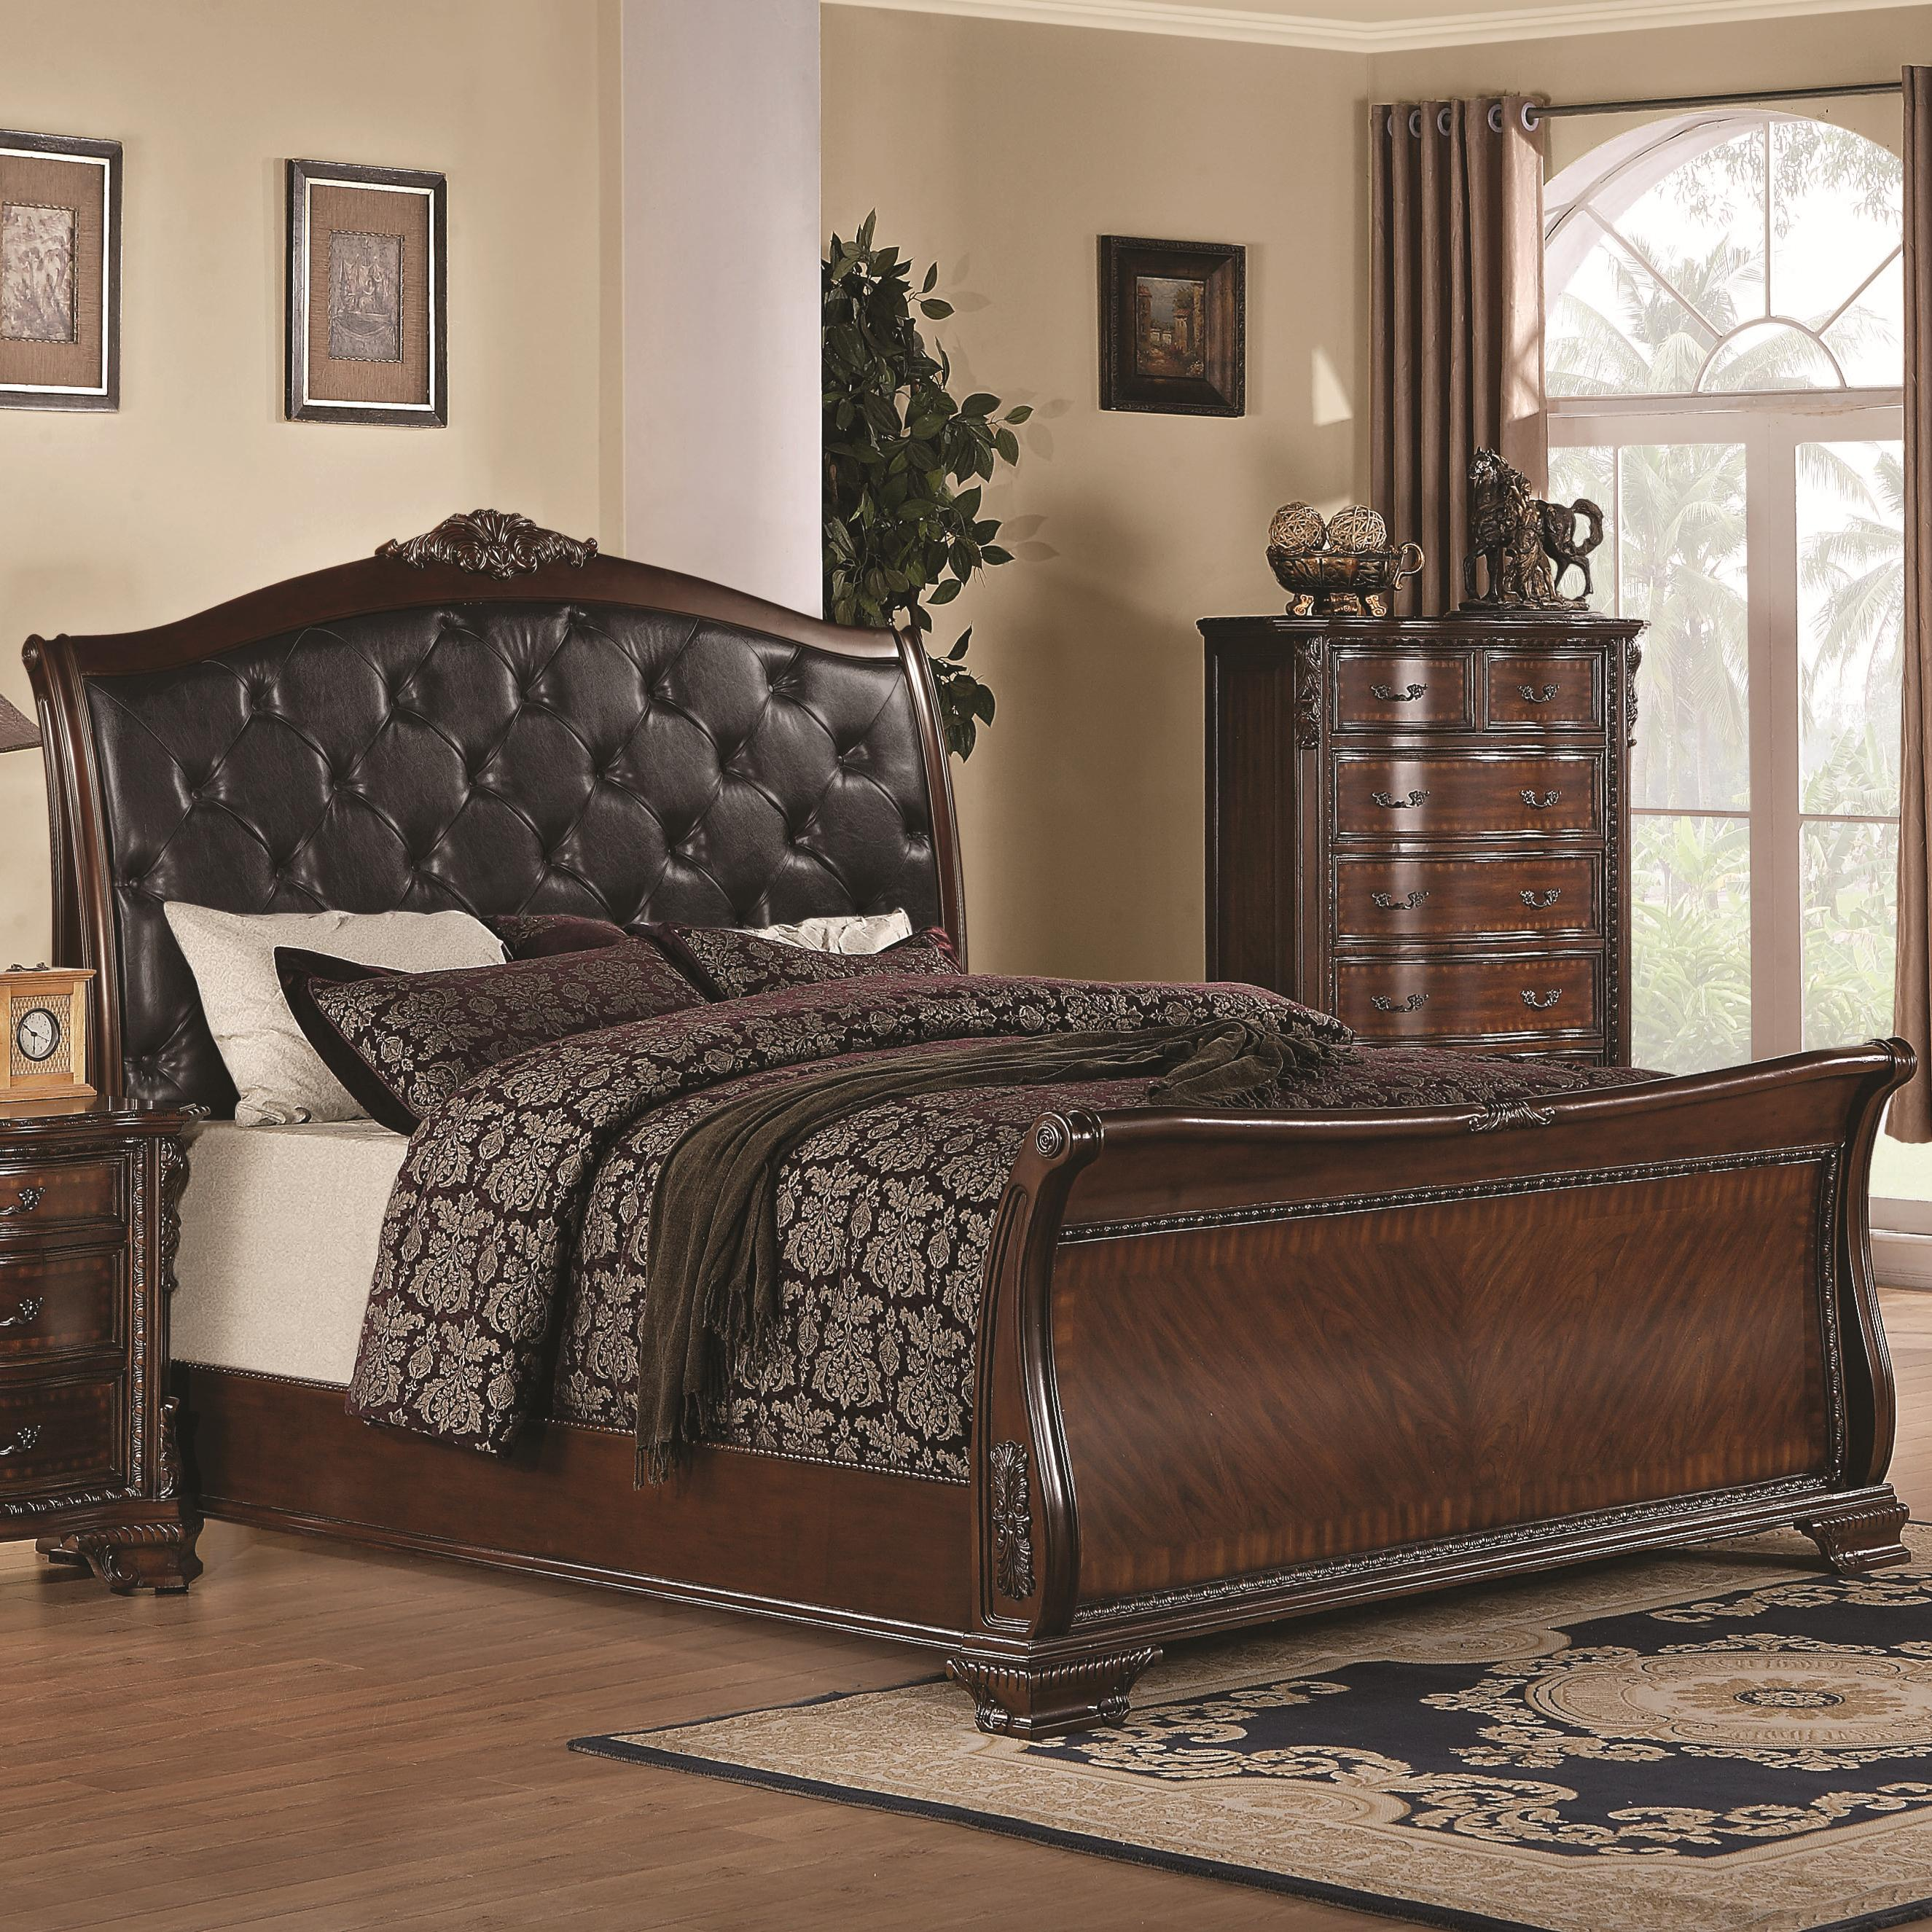 Queen 4 pc set, maddison ( bed, dresser, nightstand, mirror)